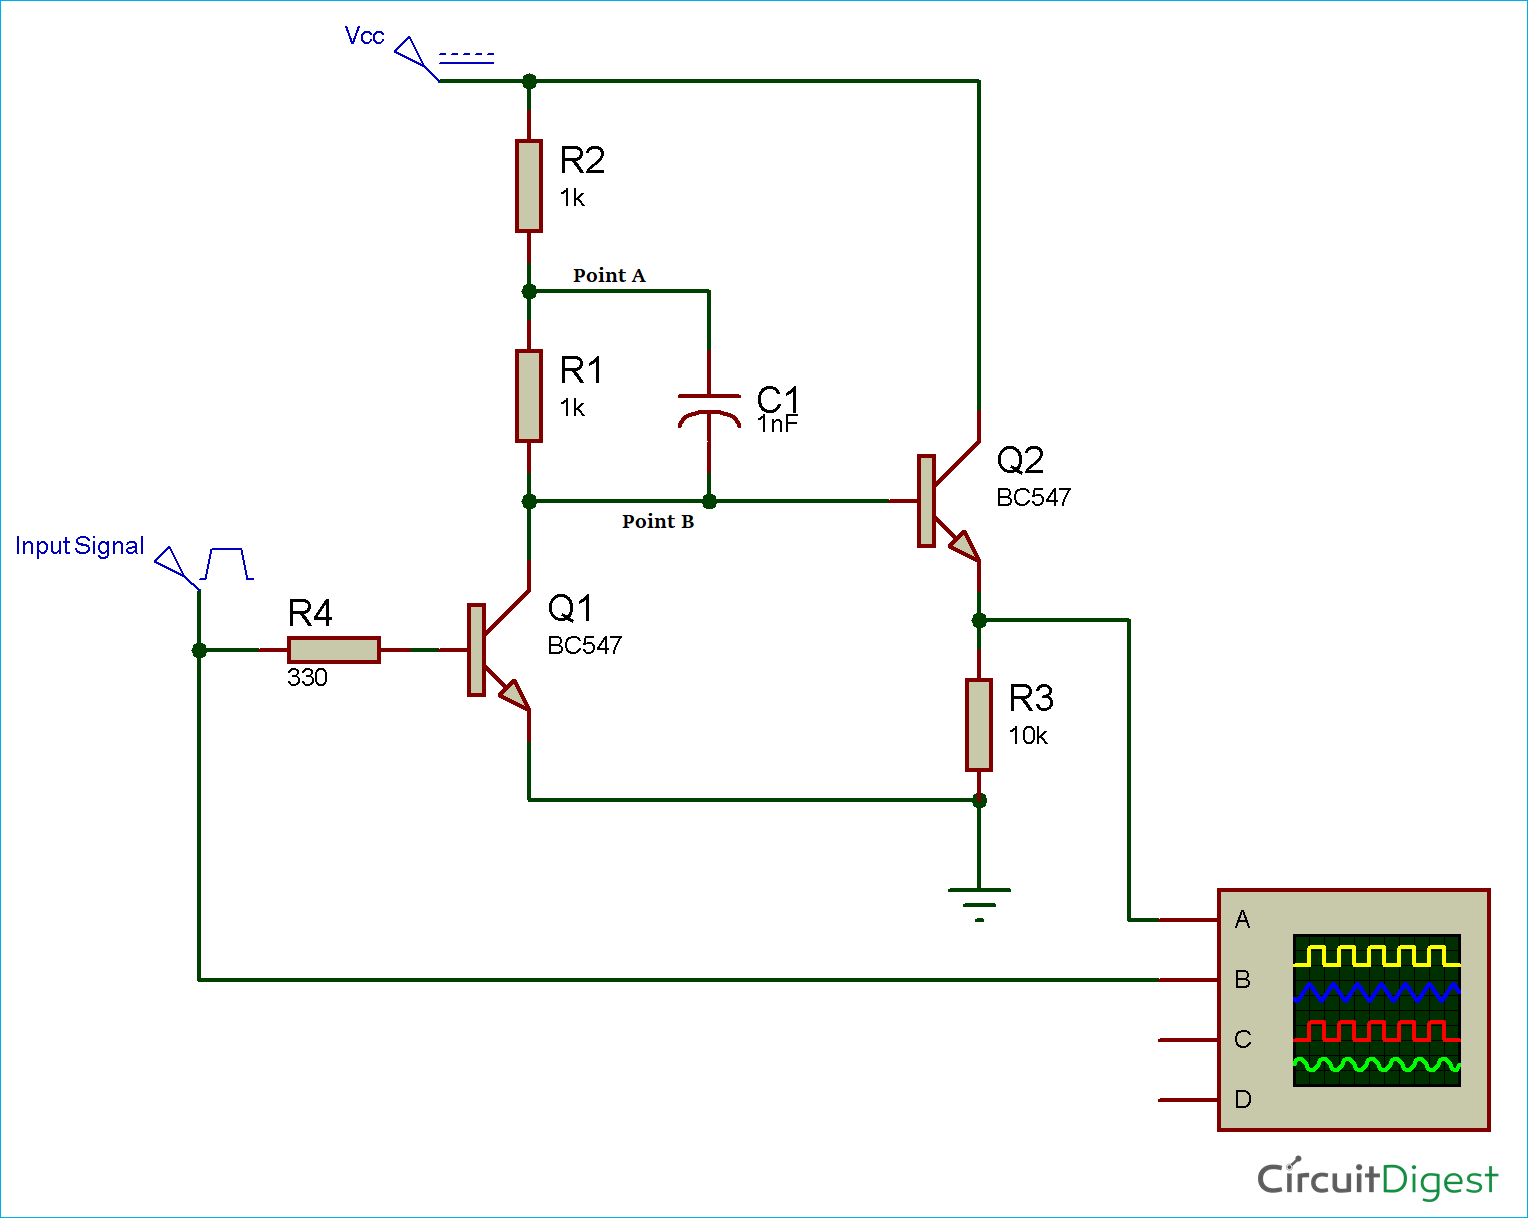 Circuit Diagram for Bootstrap Amplifier Circuit using Transistors